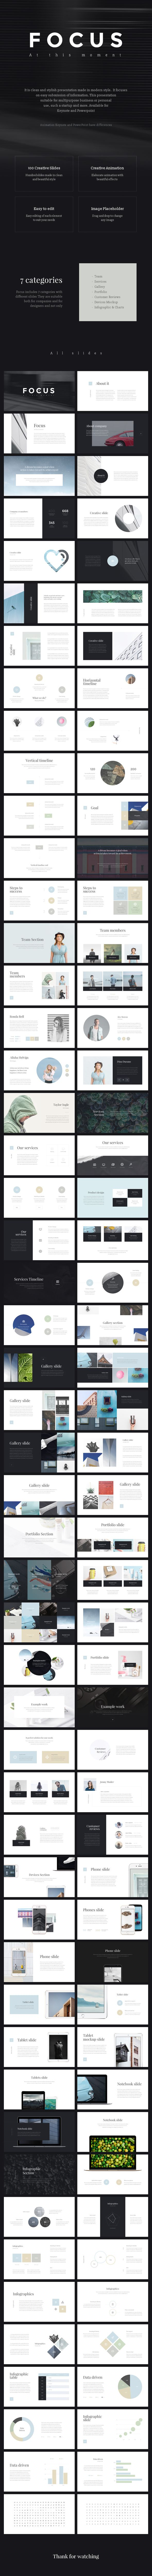 Focus PowerPoint Presentation (PowerPoint Templates)